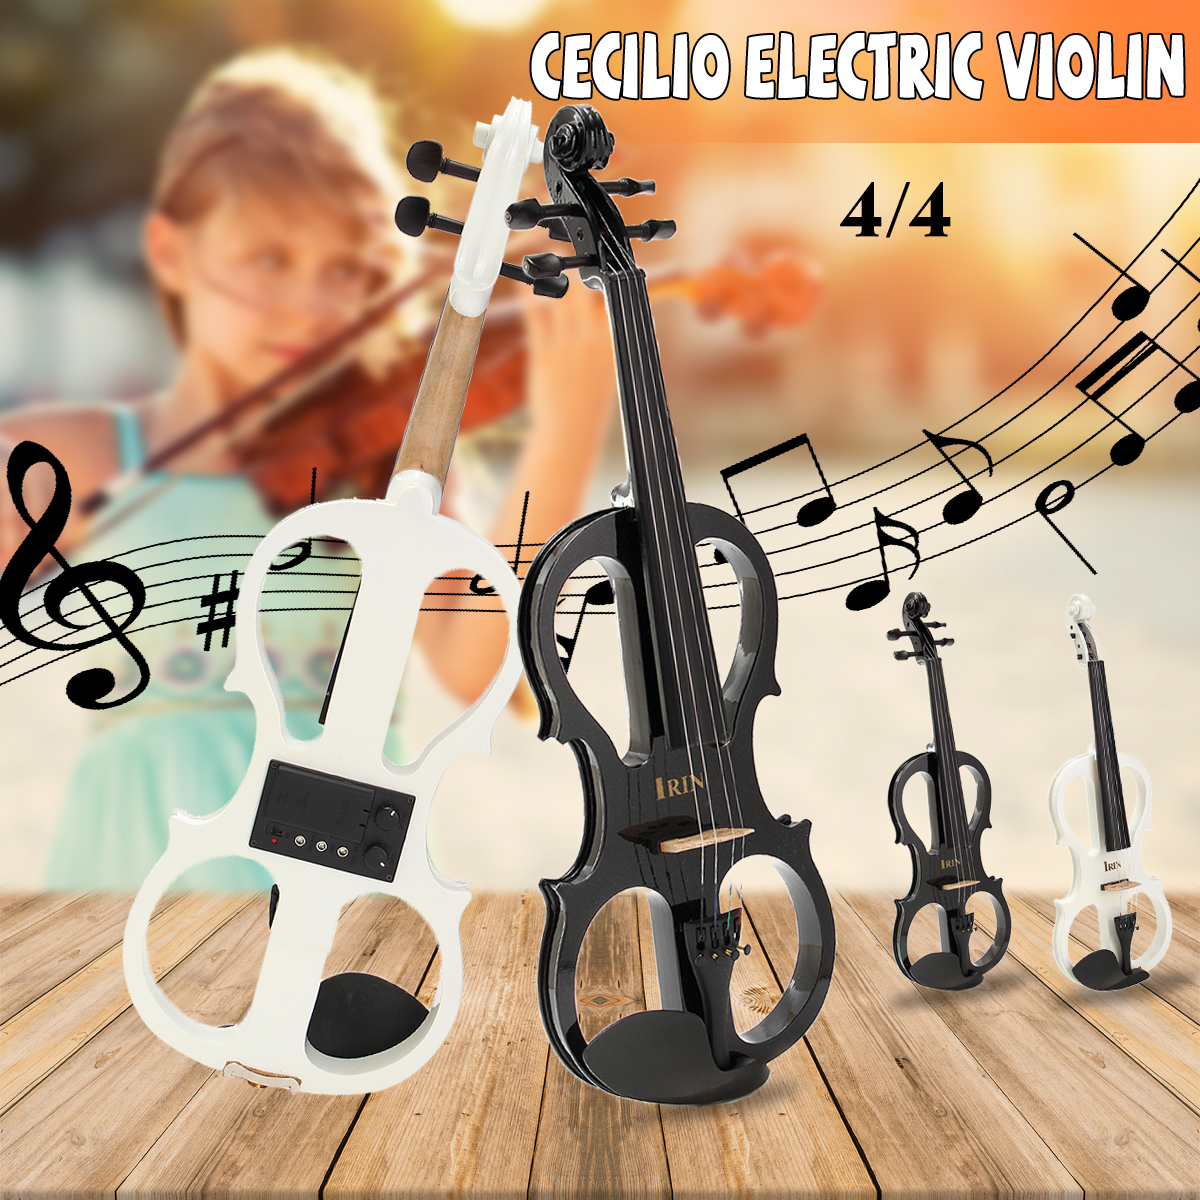 New Arrival Musical Instruments 4/4 Maple Electric Violin Silent Wood Full Size with Ebony Fittings Cable Headphone & Case Hot kinglos advanced electric art full size violin white & black solid wood silent violin 4 4 ebony fittings w parts dsg 1802